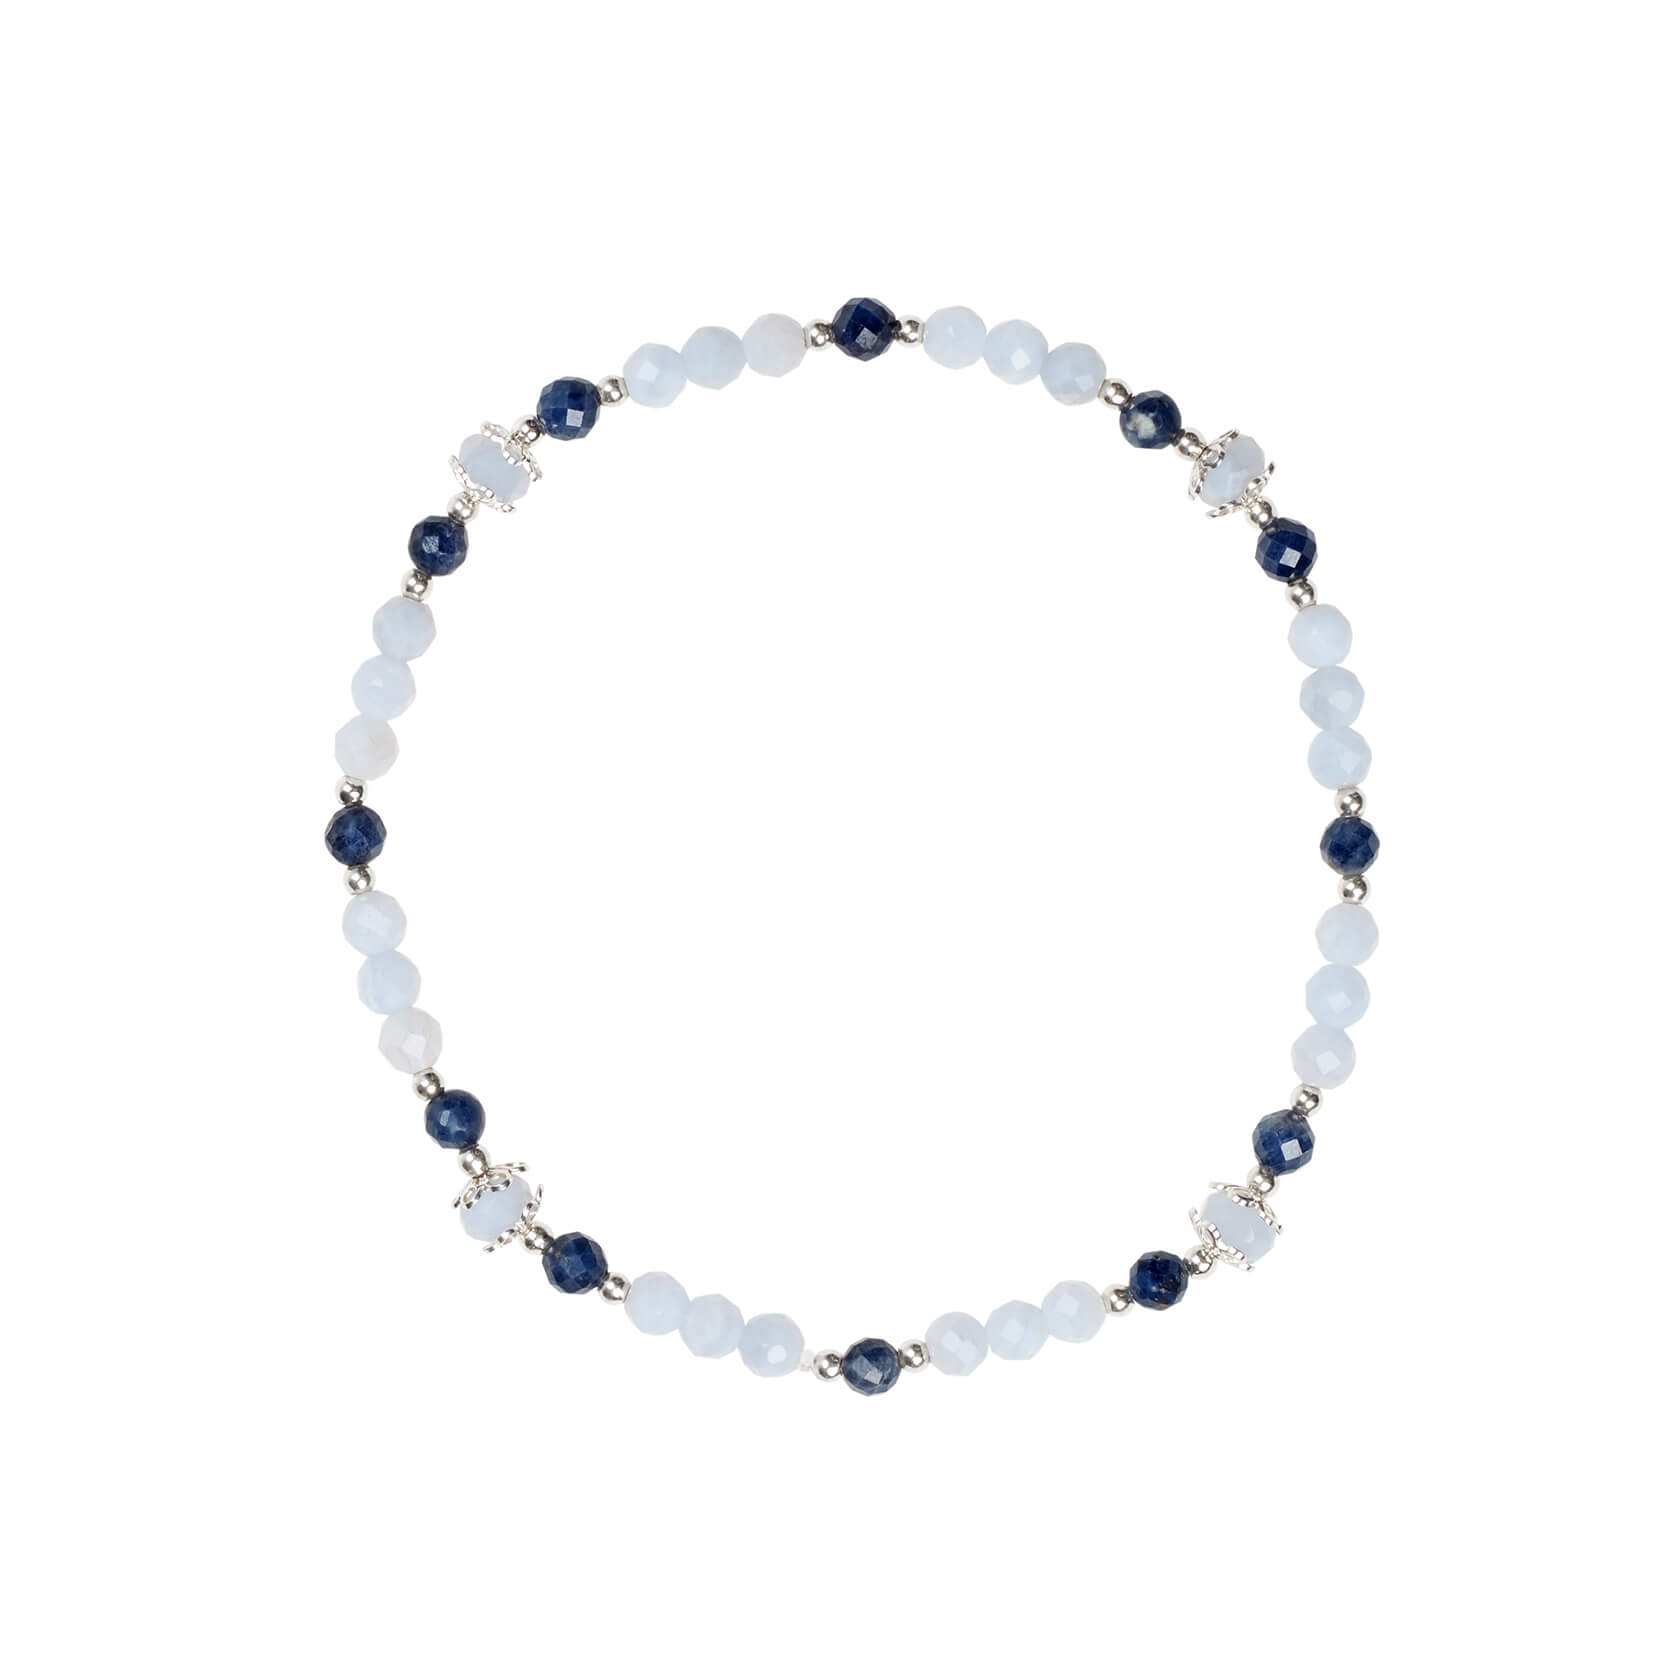 Chalcedony and Sapphire Bracelet